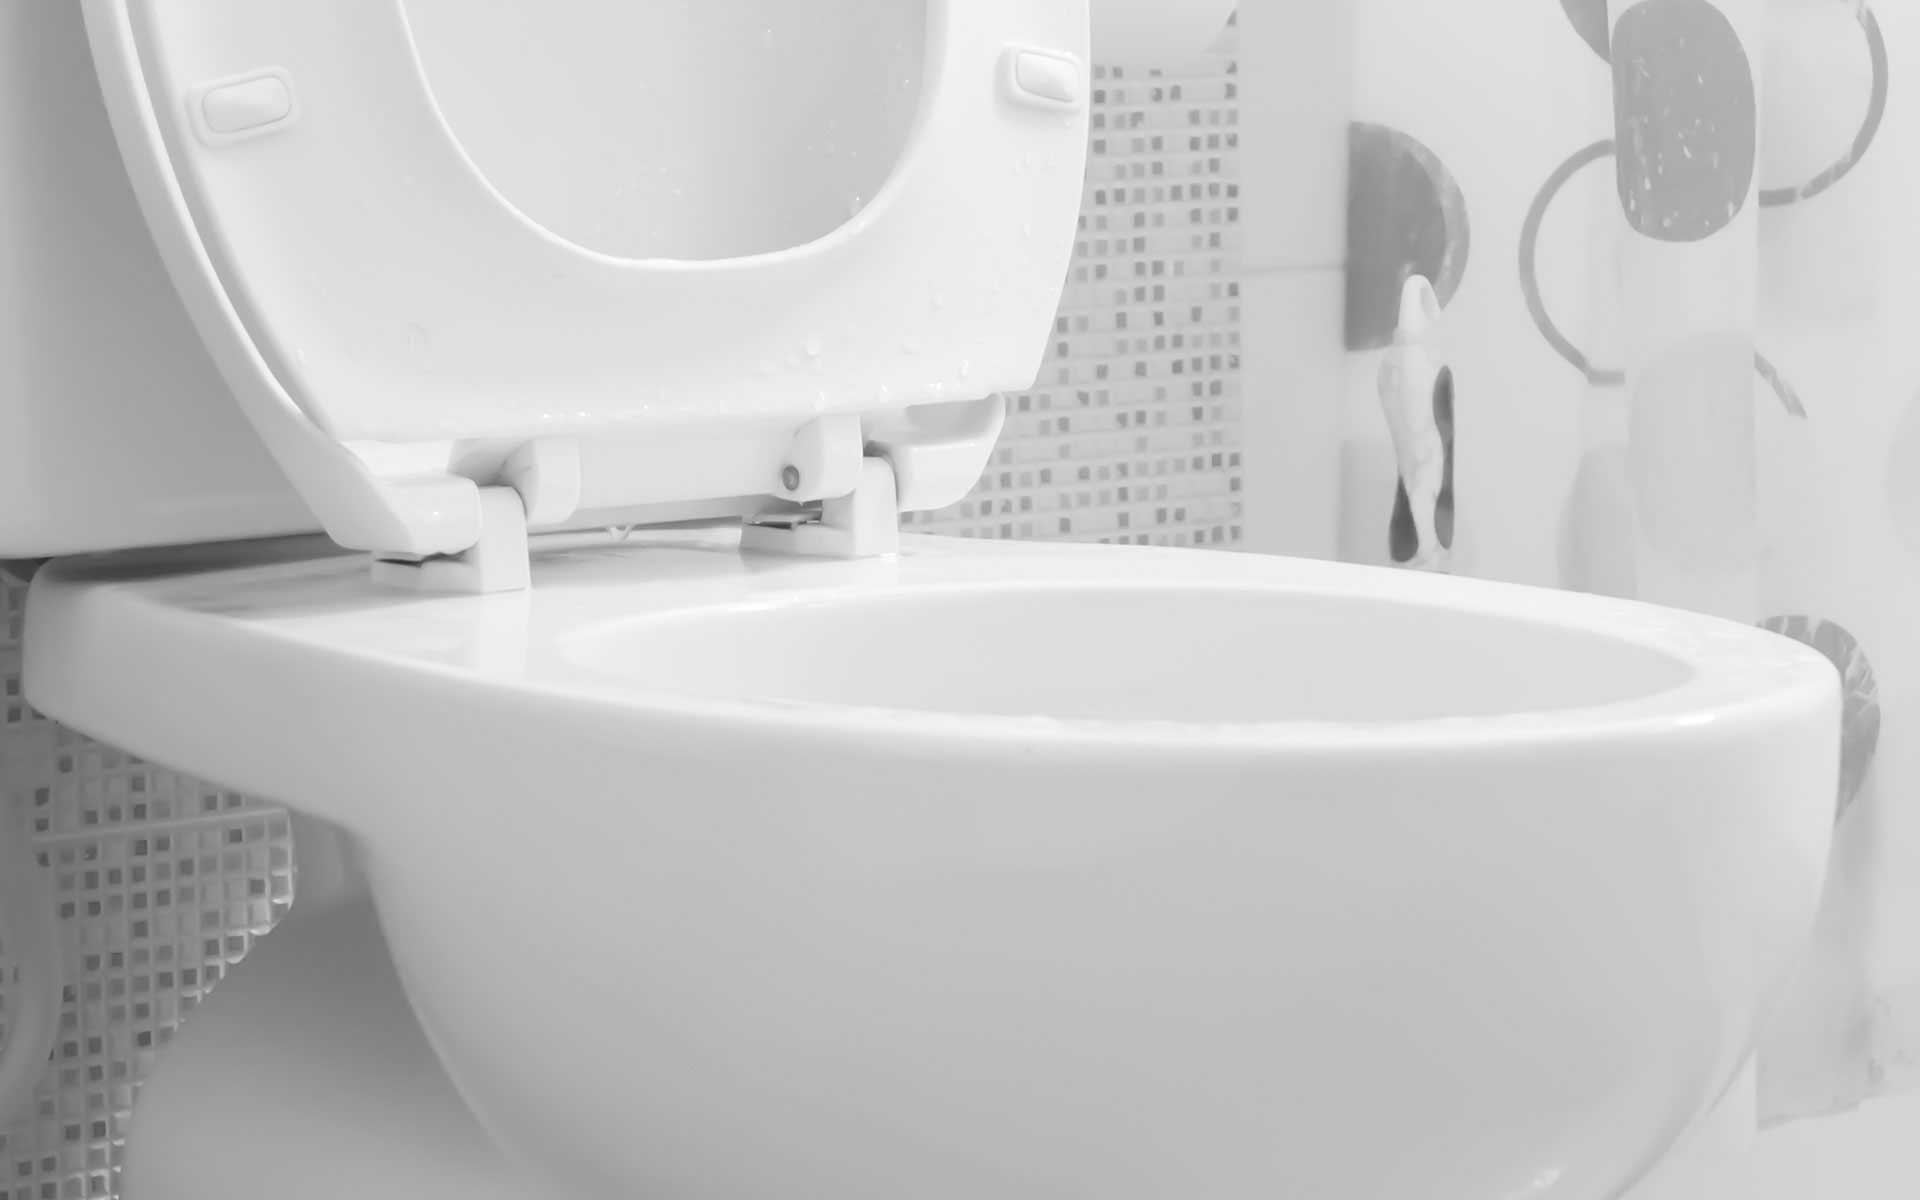 Cocolalla Toilet Repair